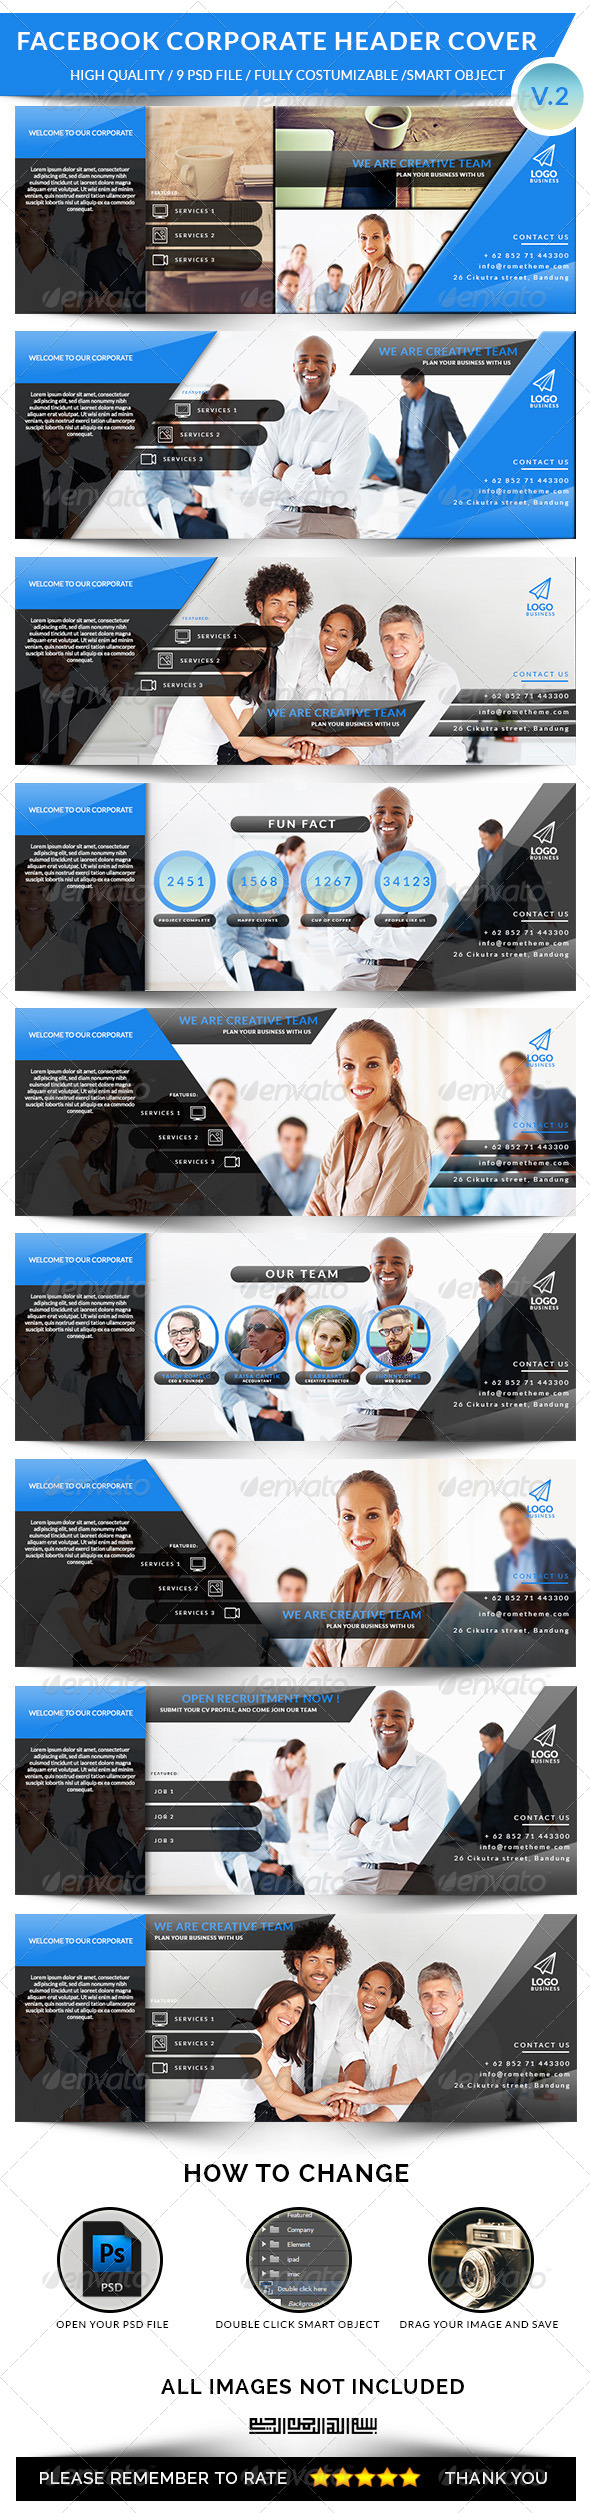 GraphicRiver Facebook Corporate Header Cover V.2 8496194